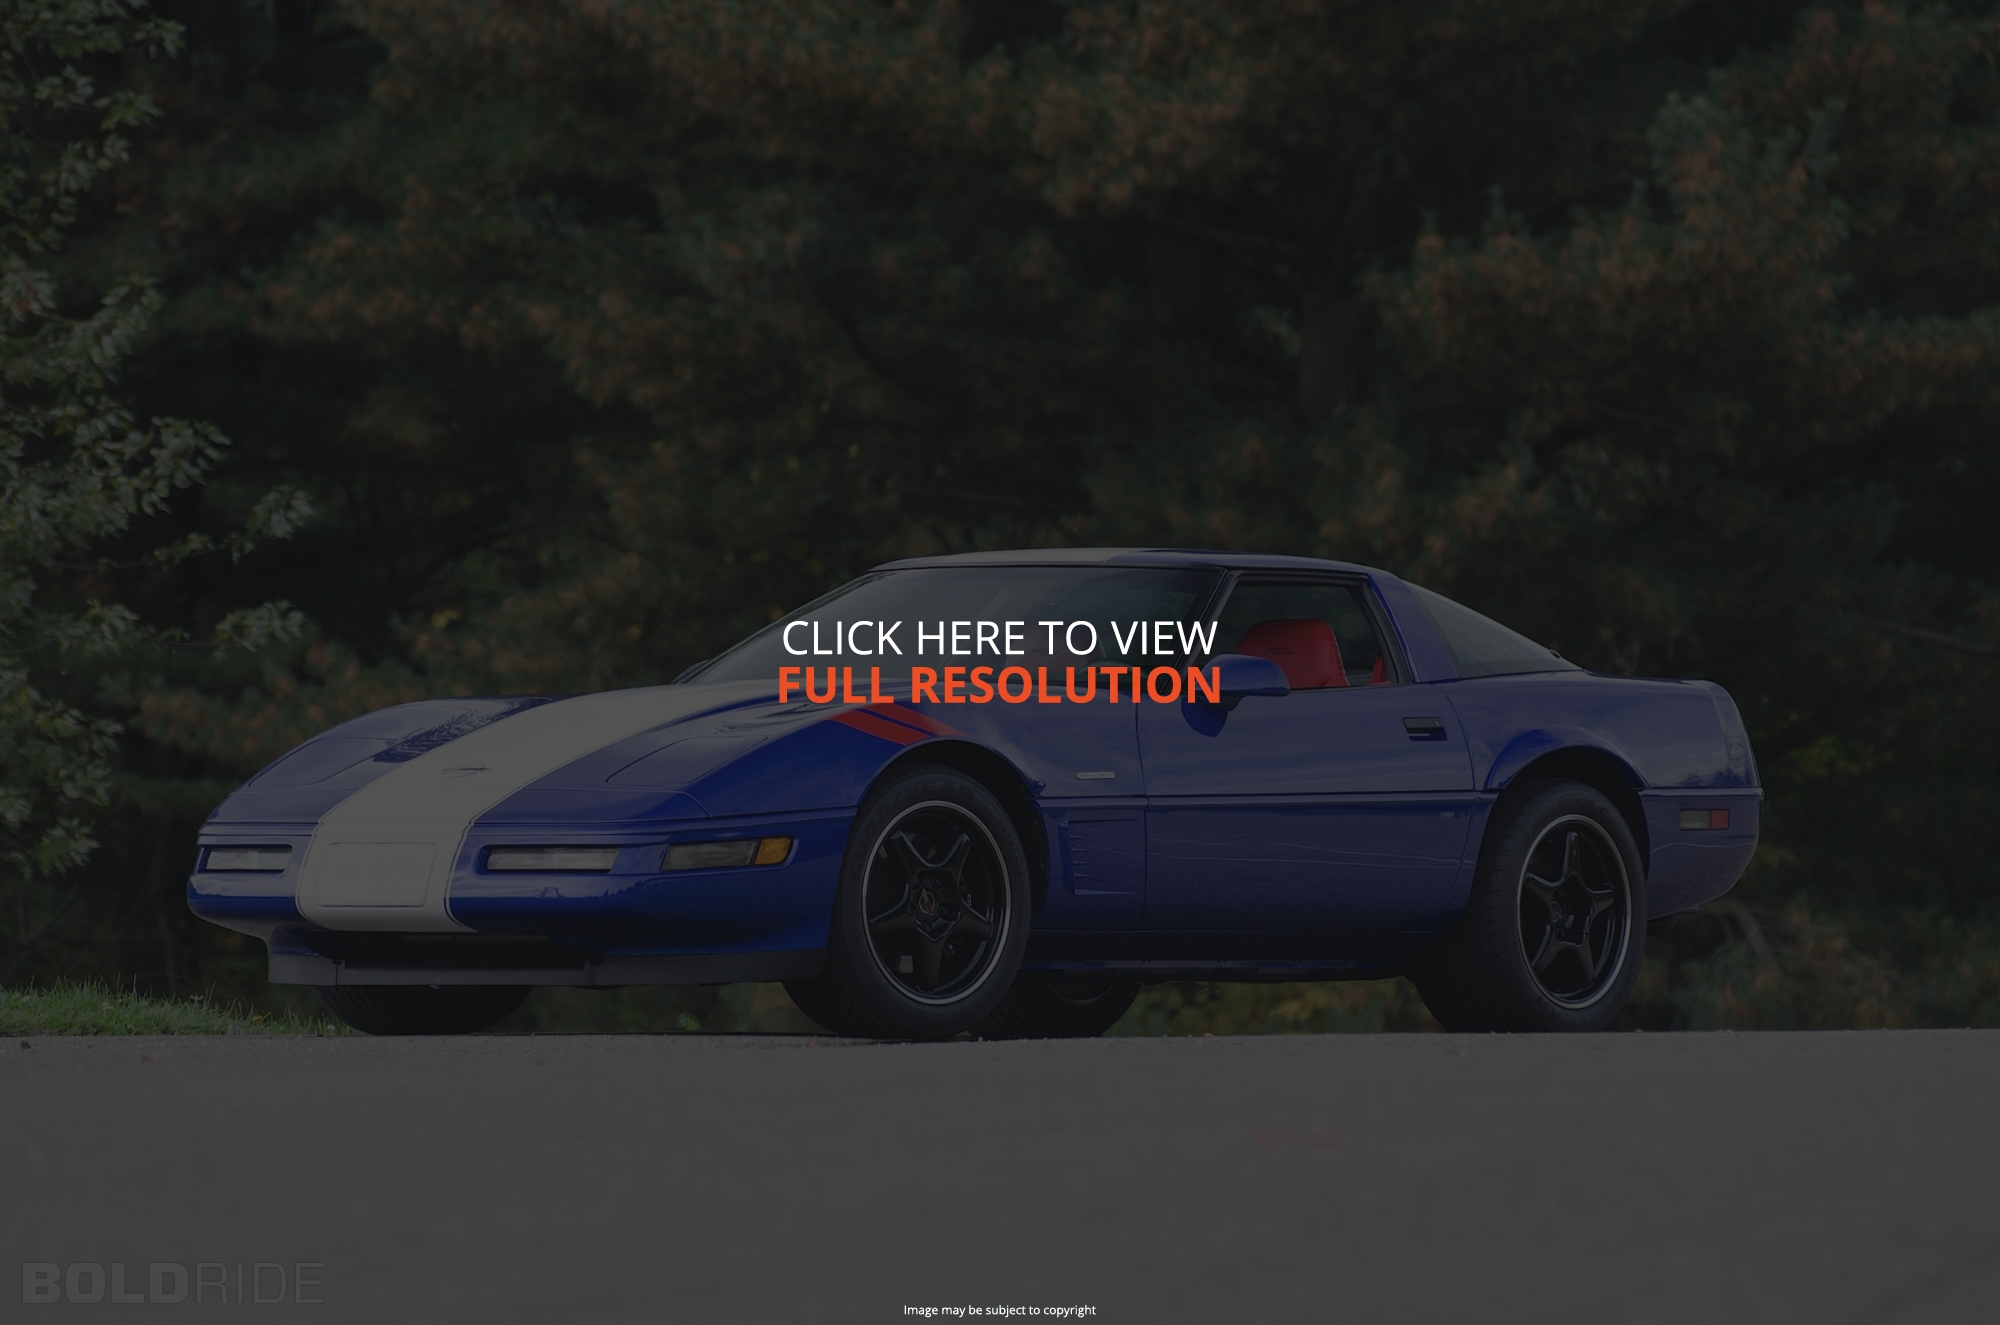 1996 Chevrolet Corvette c4 coupe – pictures, information and